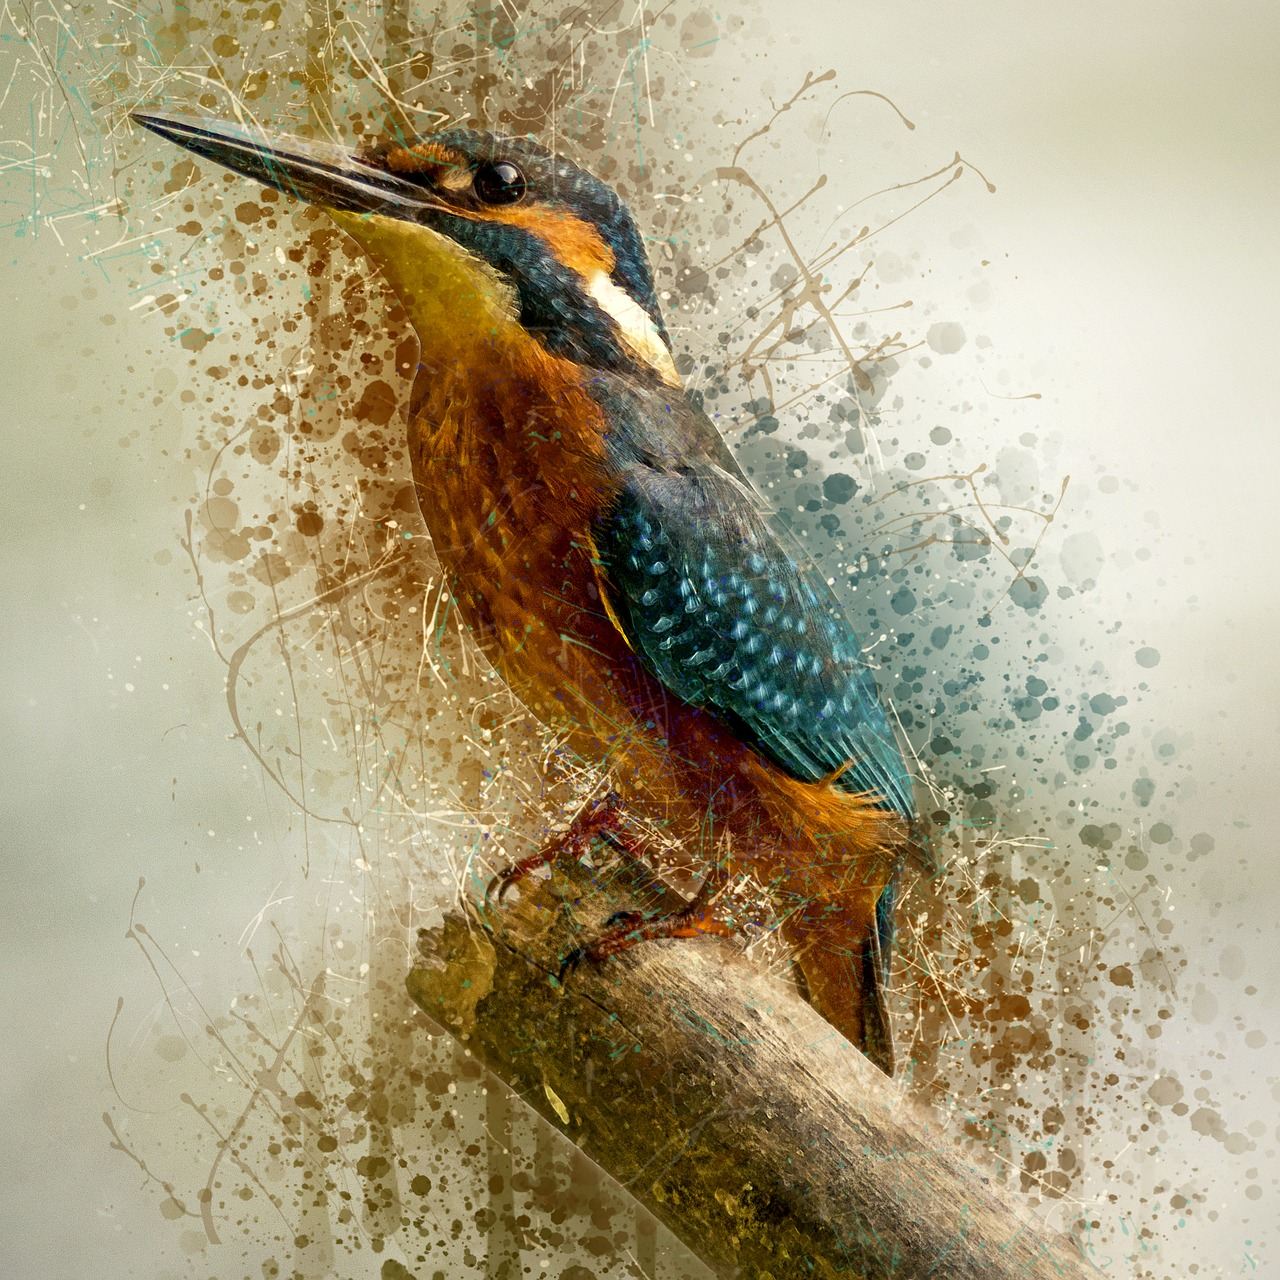 Drawing of a kingfisher